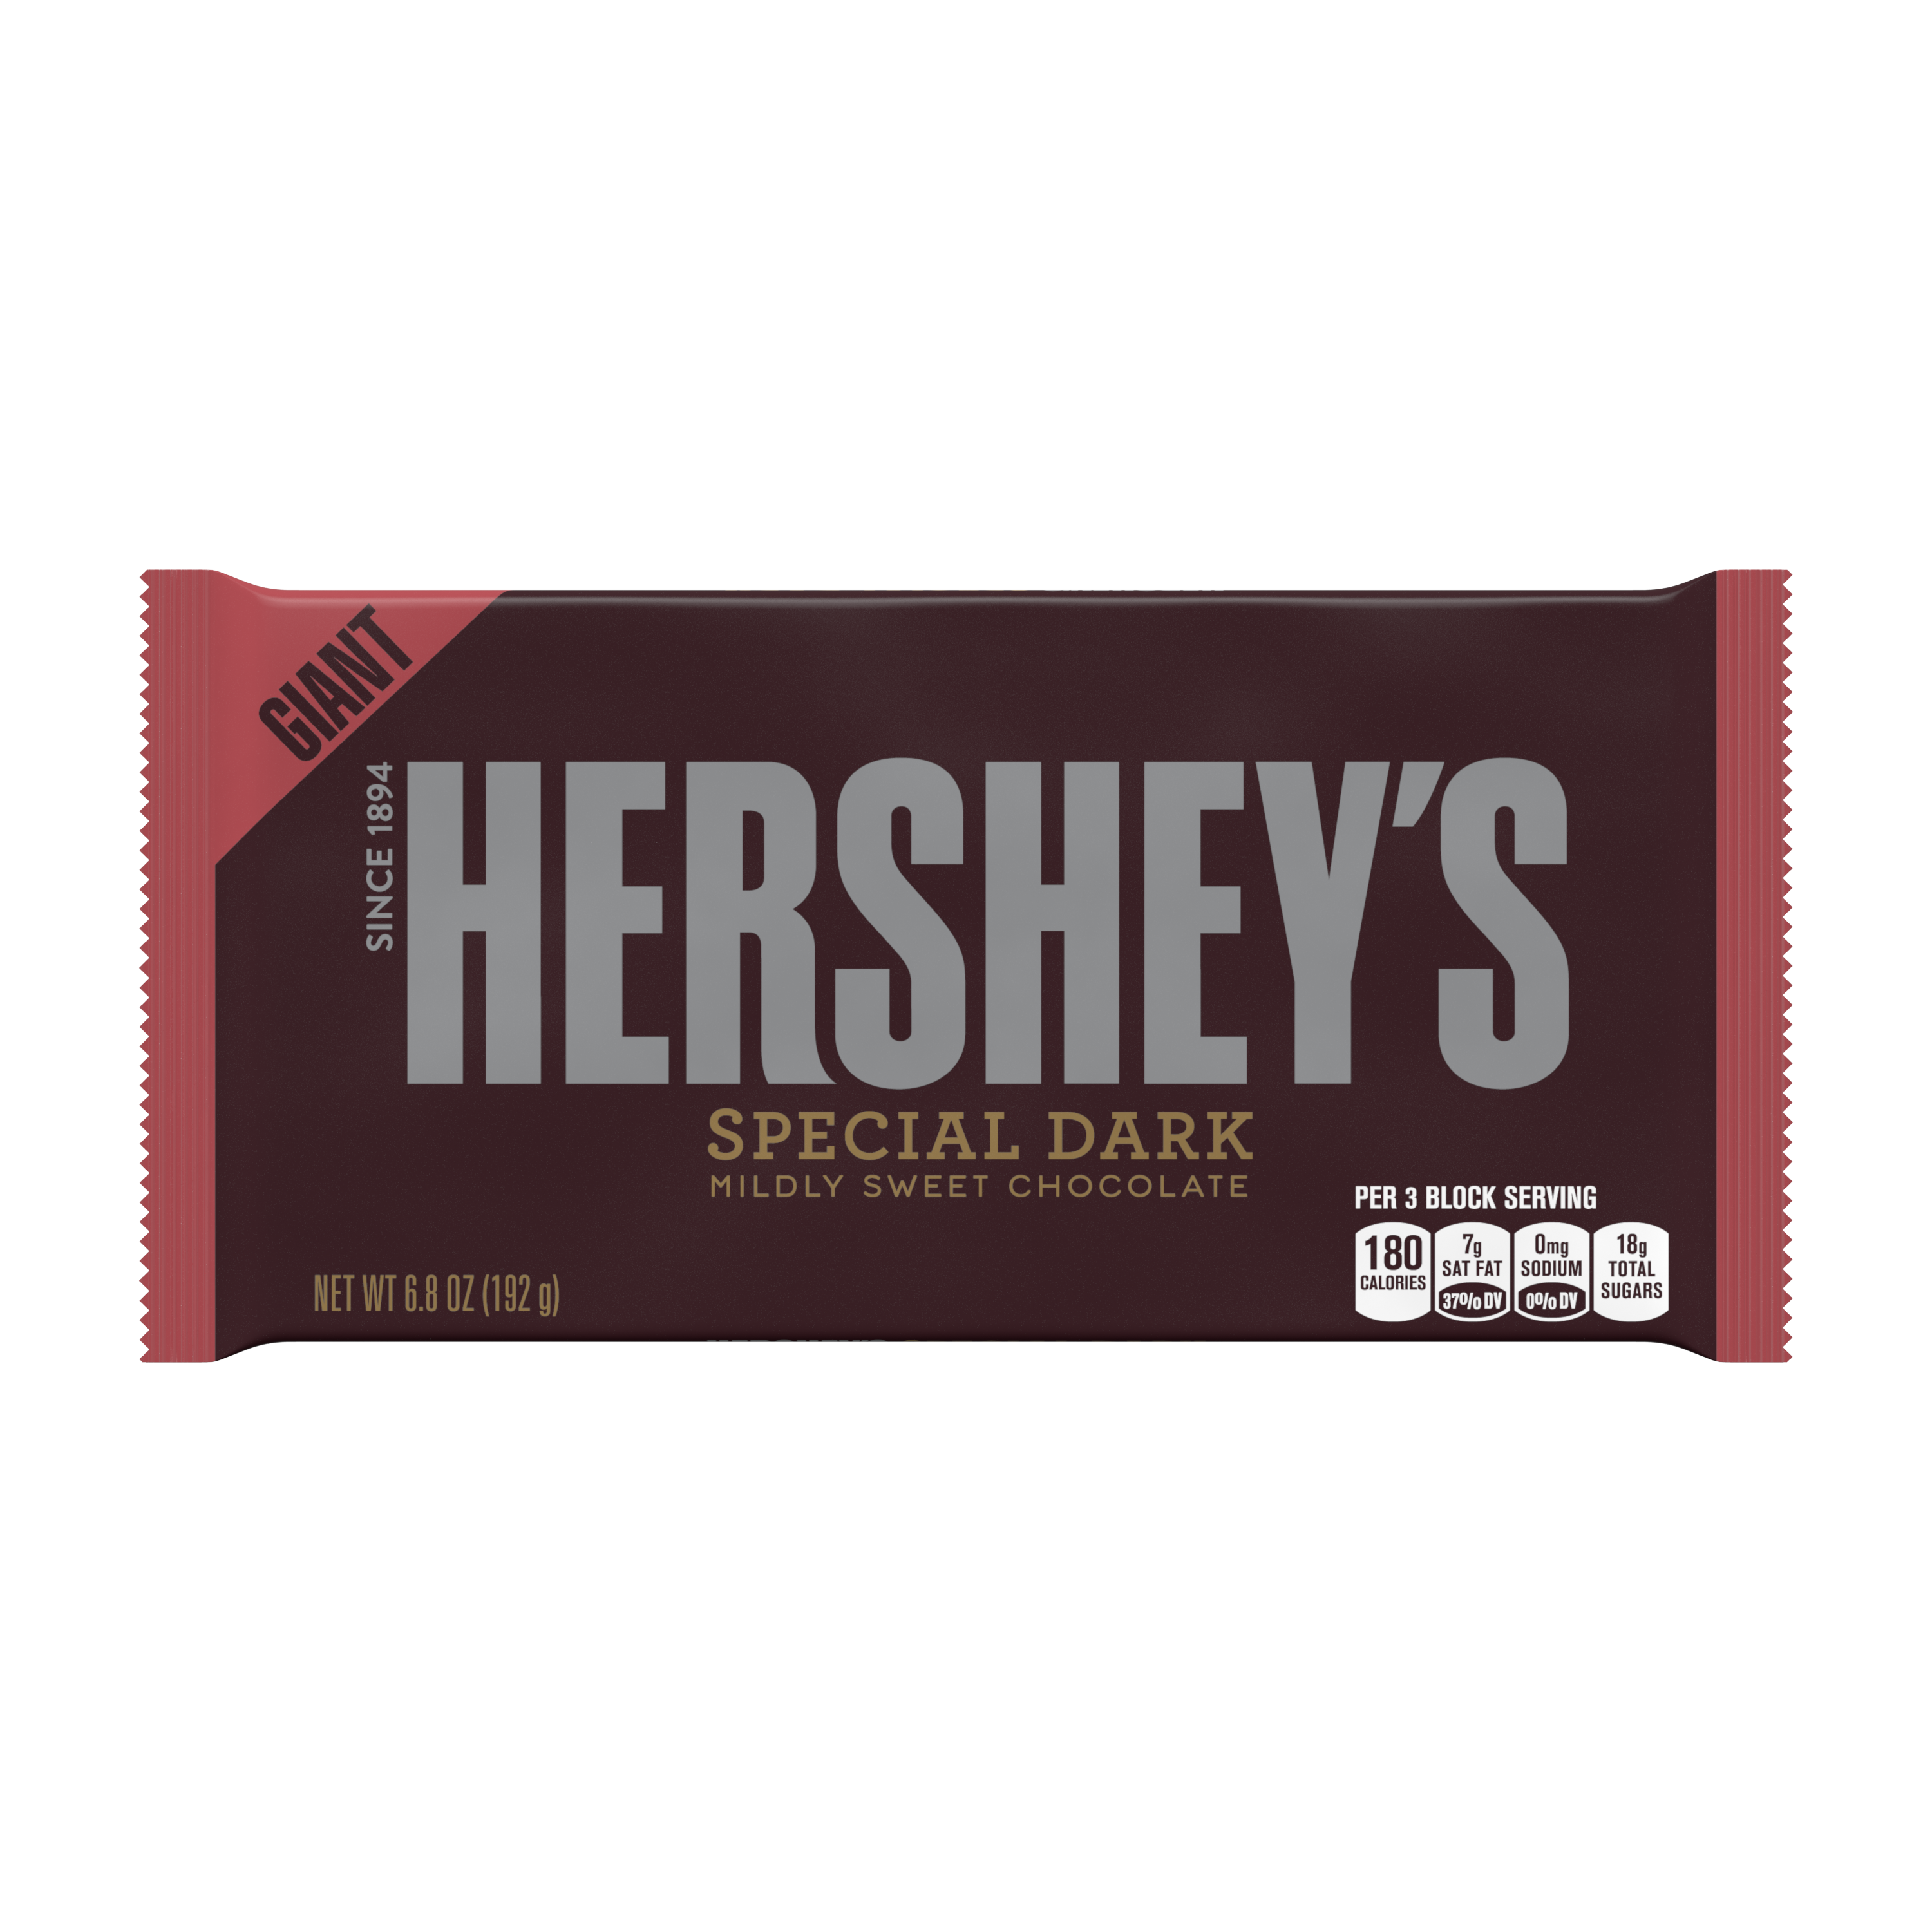 Hershey's Special Dark, Chocolate Candy Giant Bar, 6.8 Oz